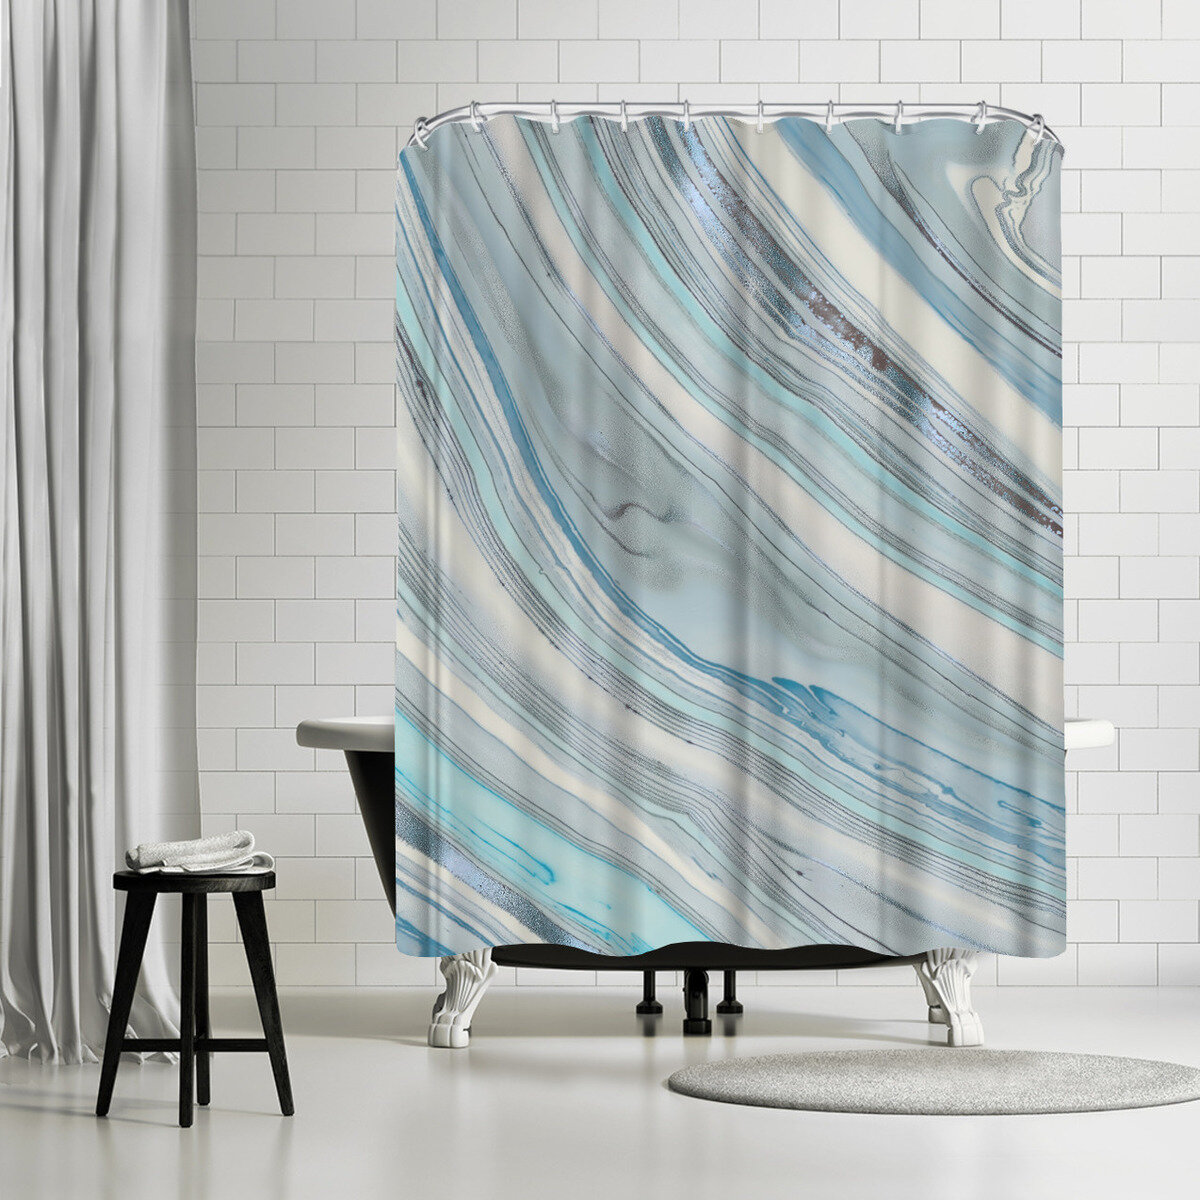 East Urban Home Lebens Art Marble Shower Curtain